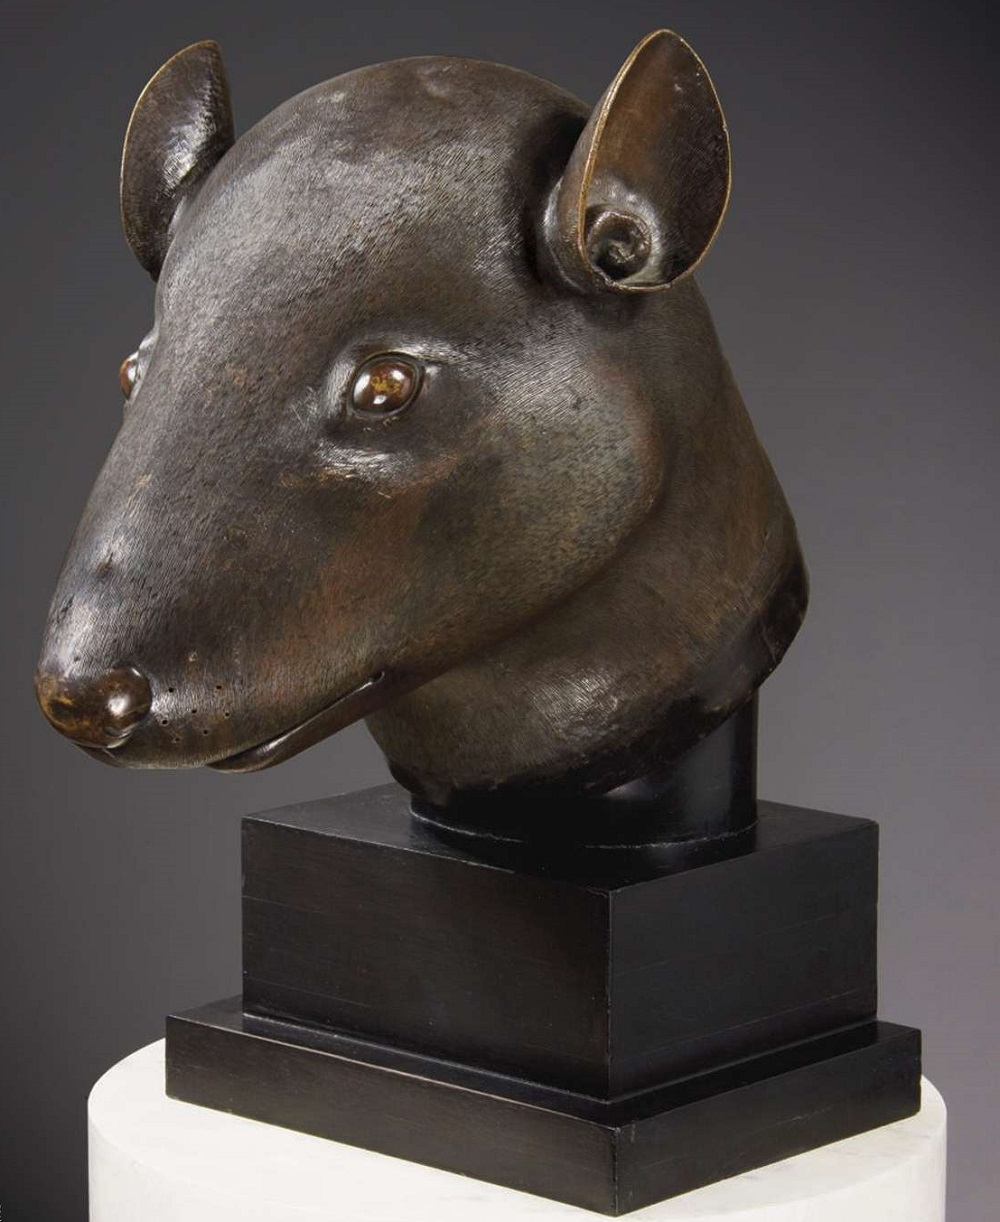 The rat bronze, returned by Pinault